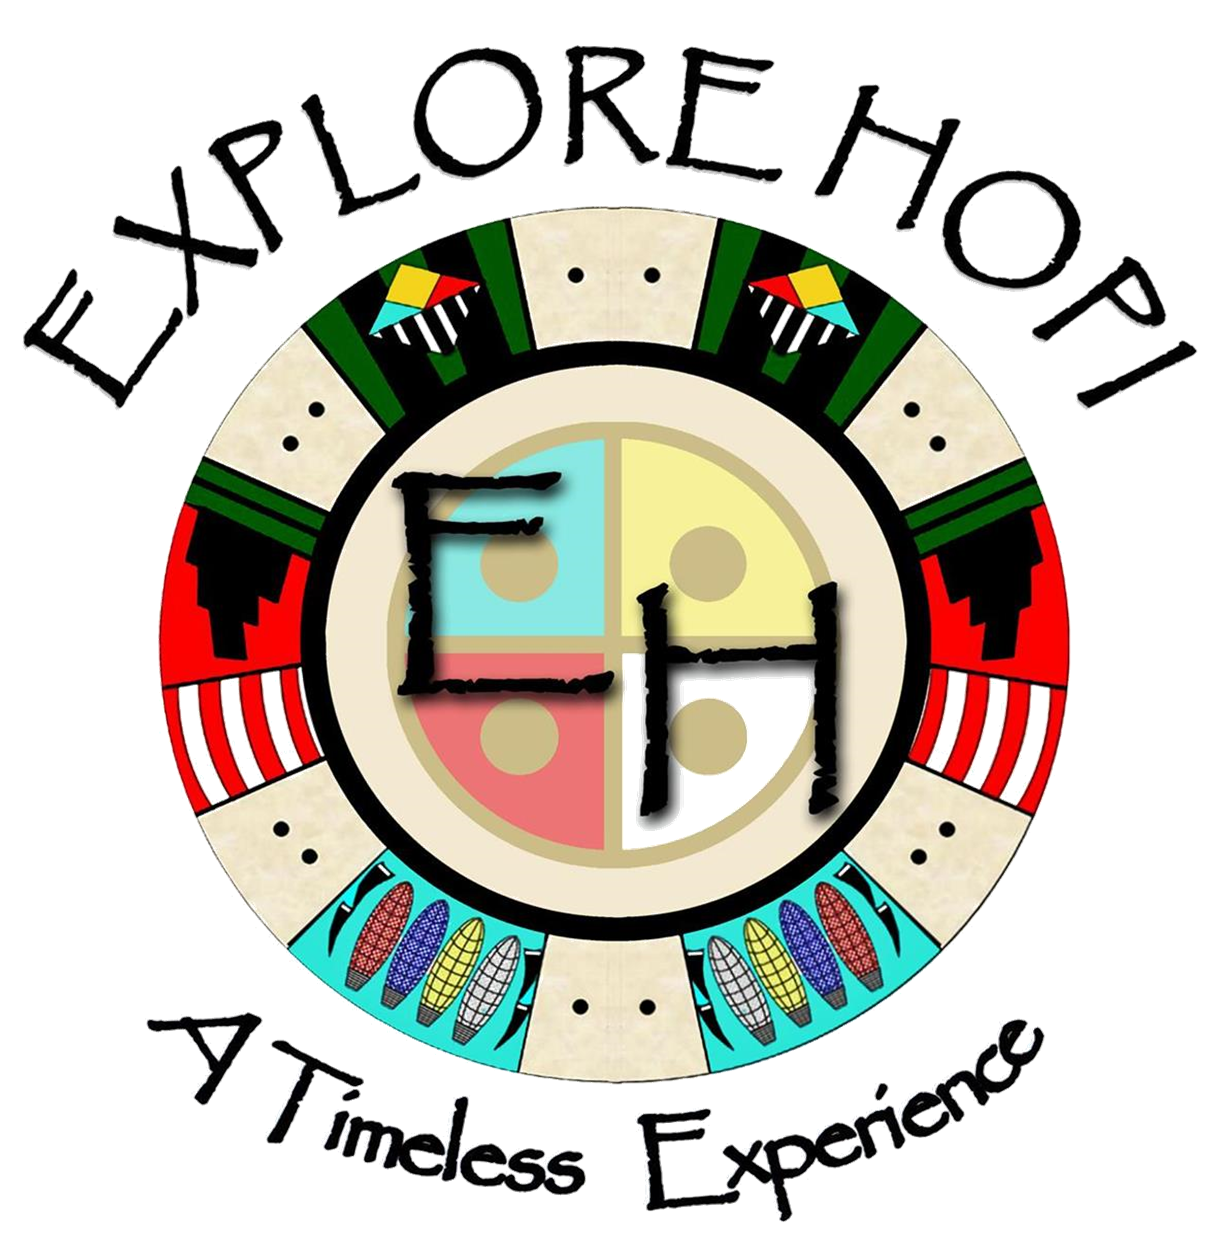 Explore Hopi: Explore Hopi website launched -- the Hopi Tribe ...